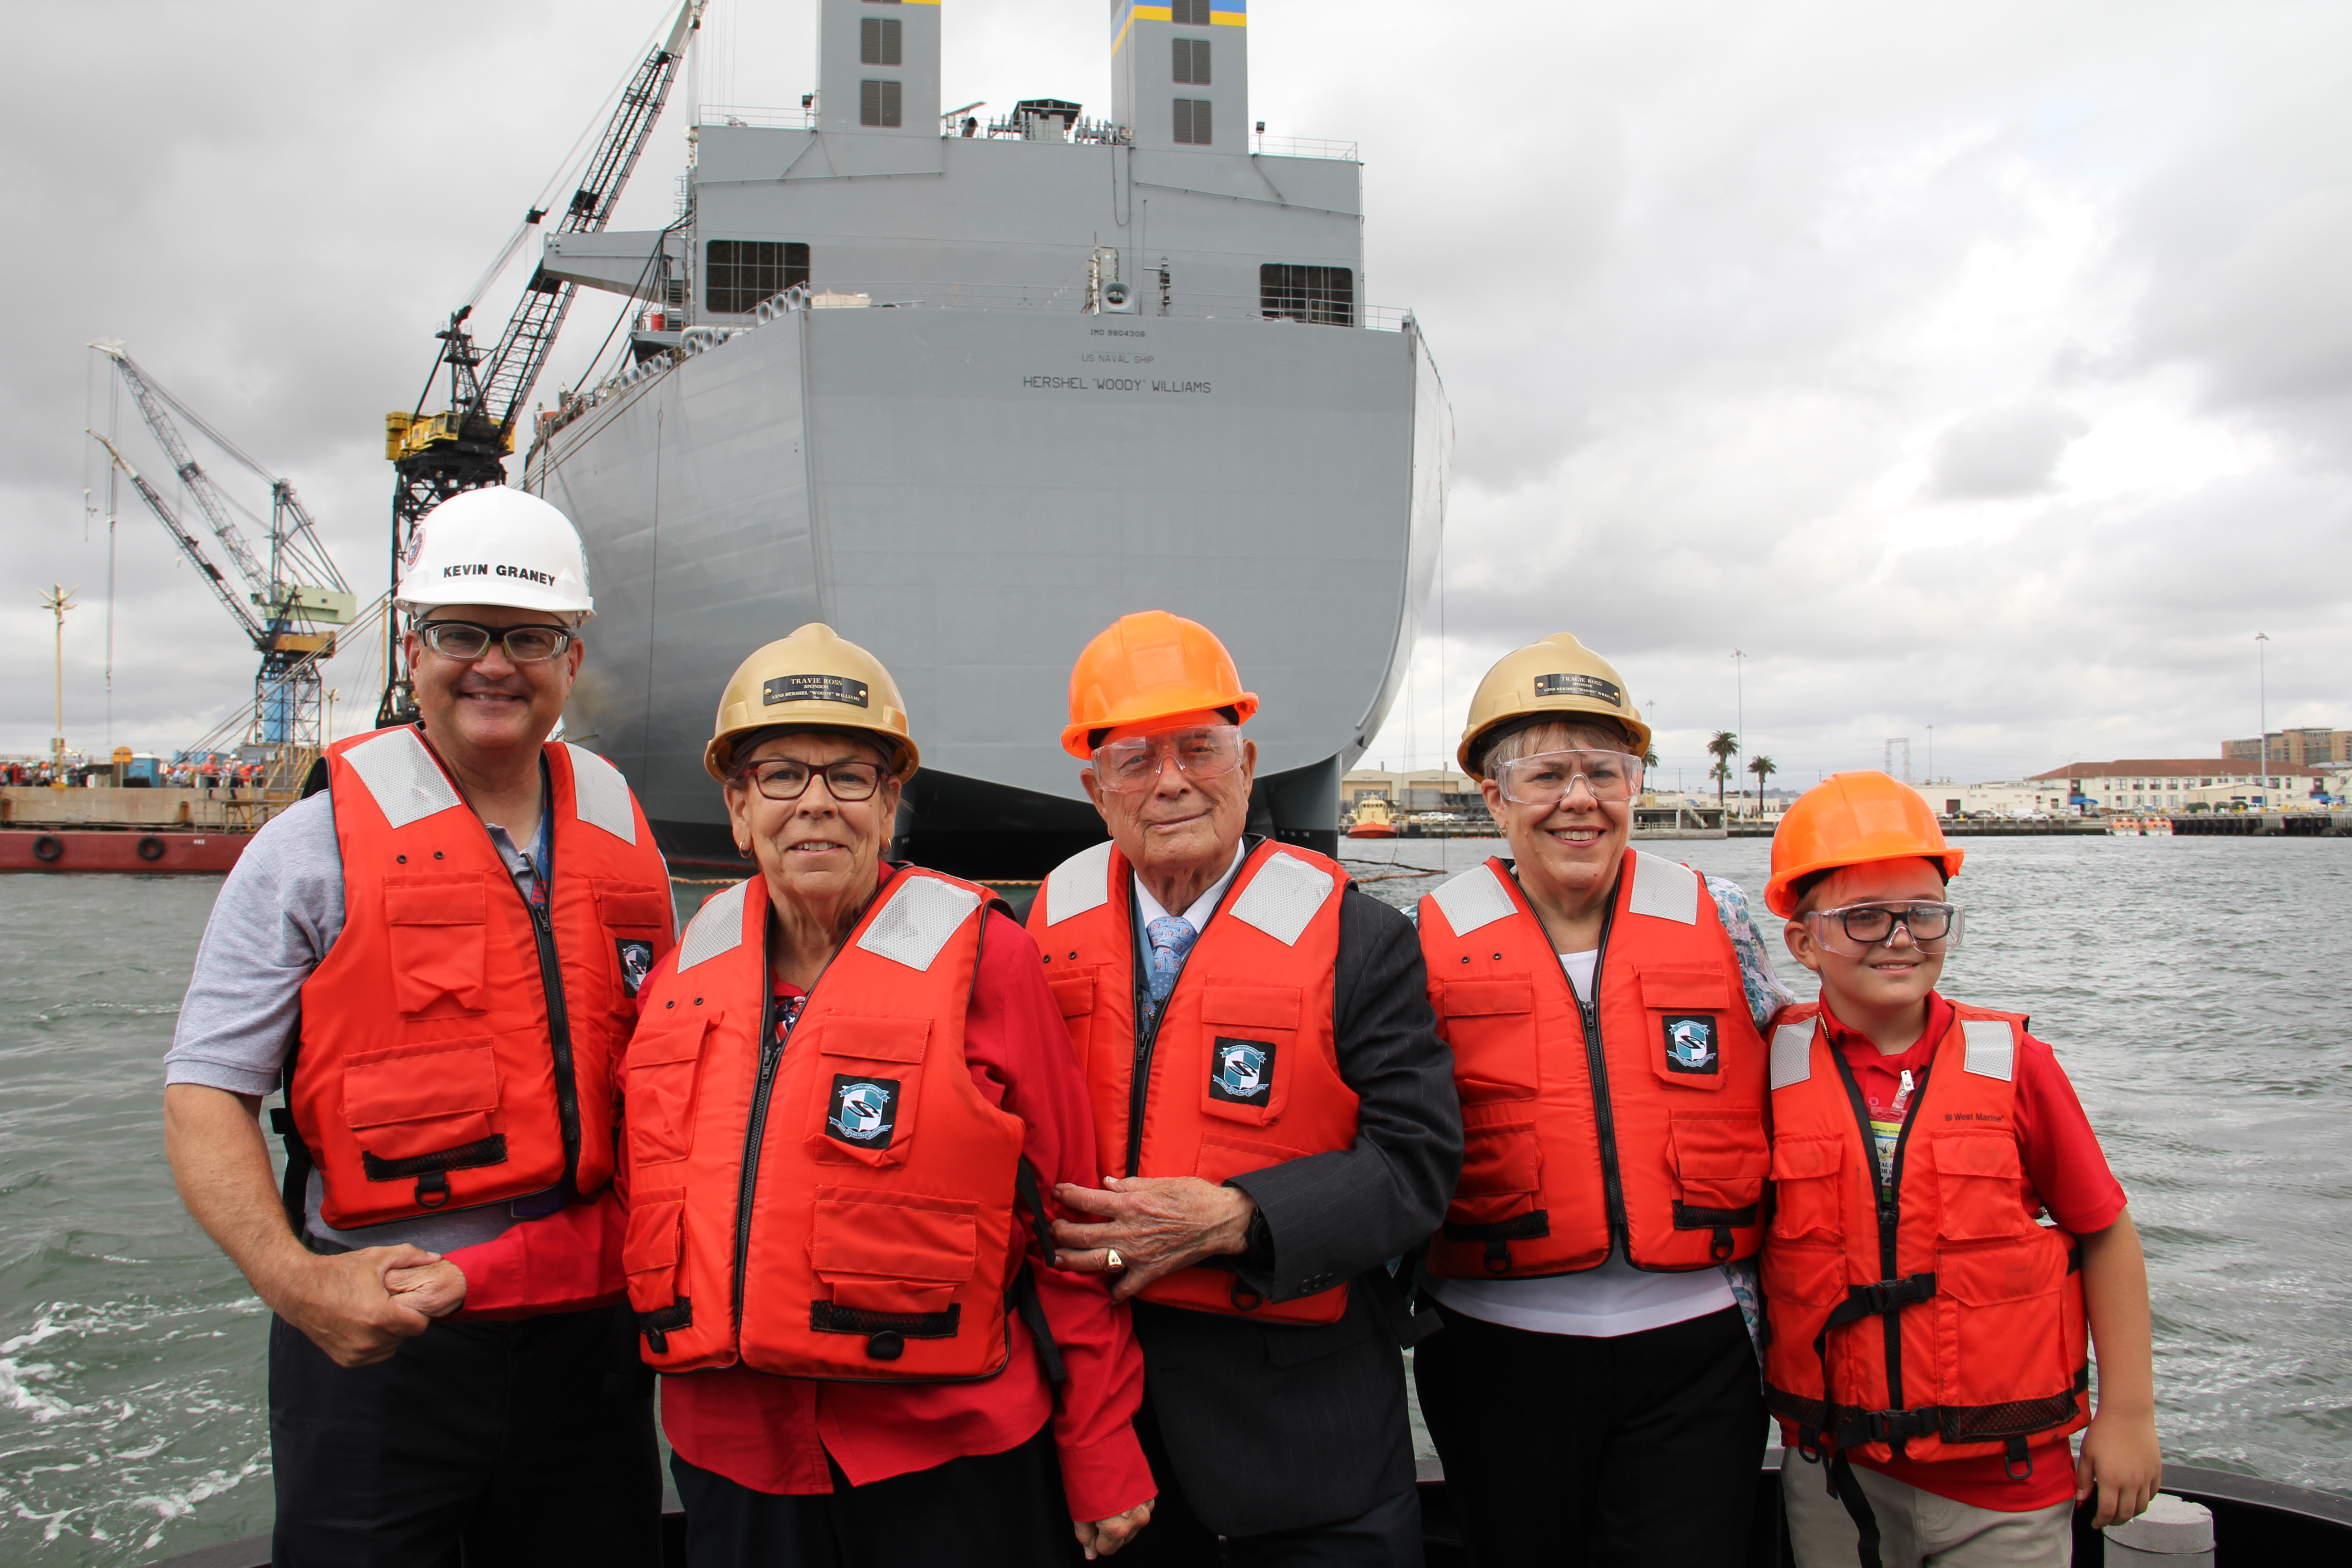 General Dynamics NASSCO Delivers New Expeditionary Sea Base to United States Navy